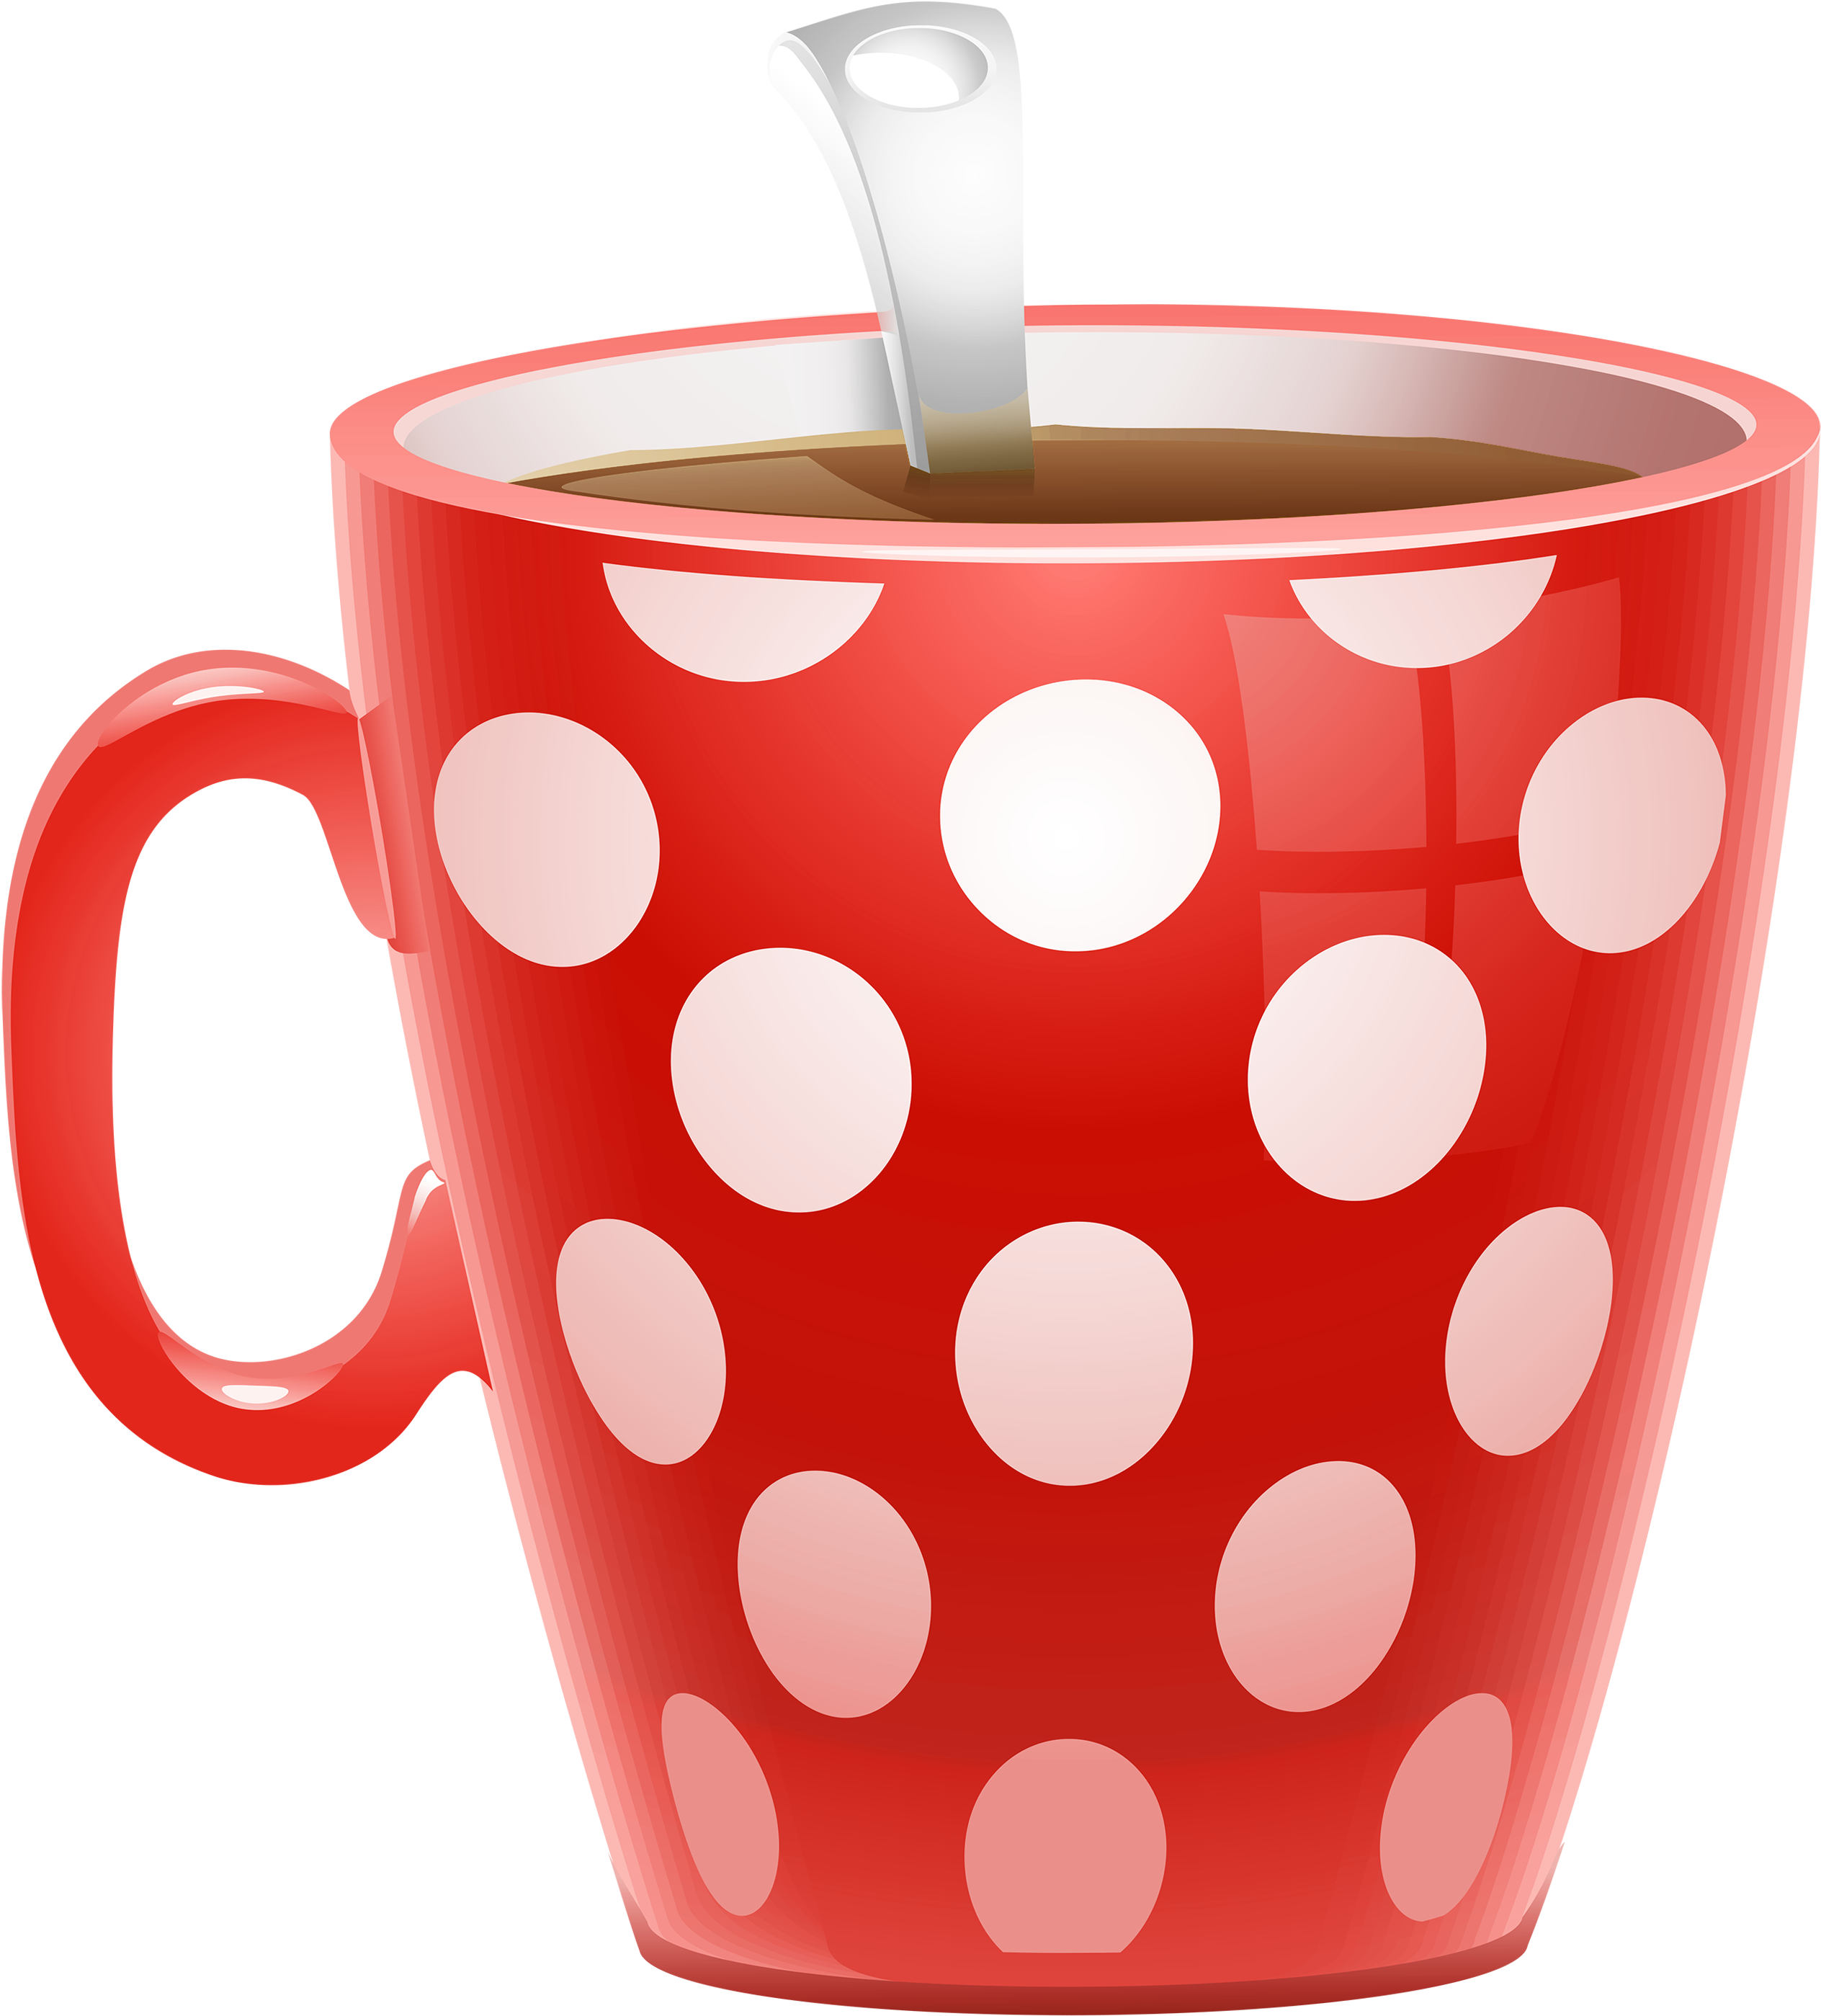 Coffee png food images. Mug clipart transparent background